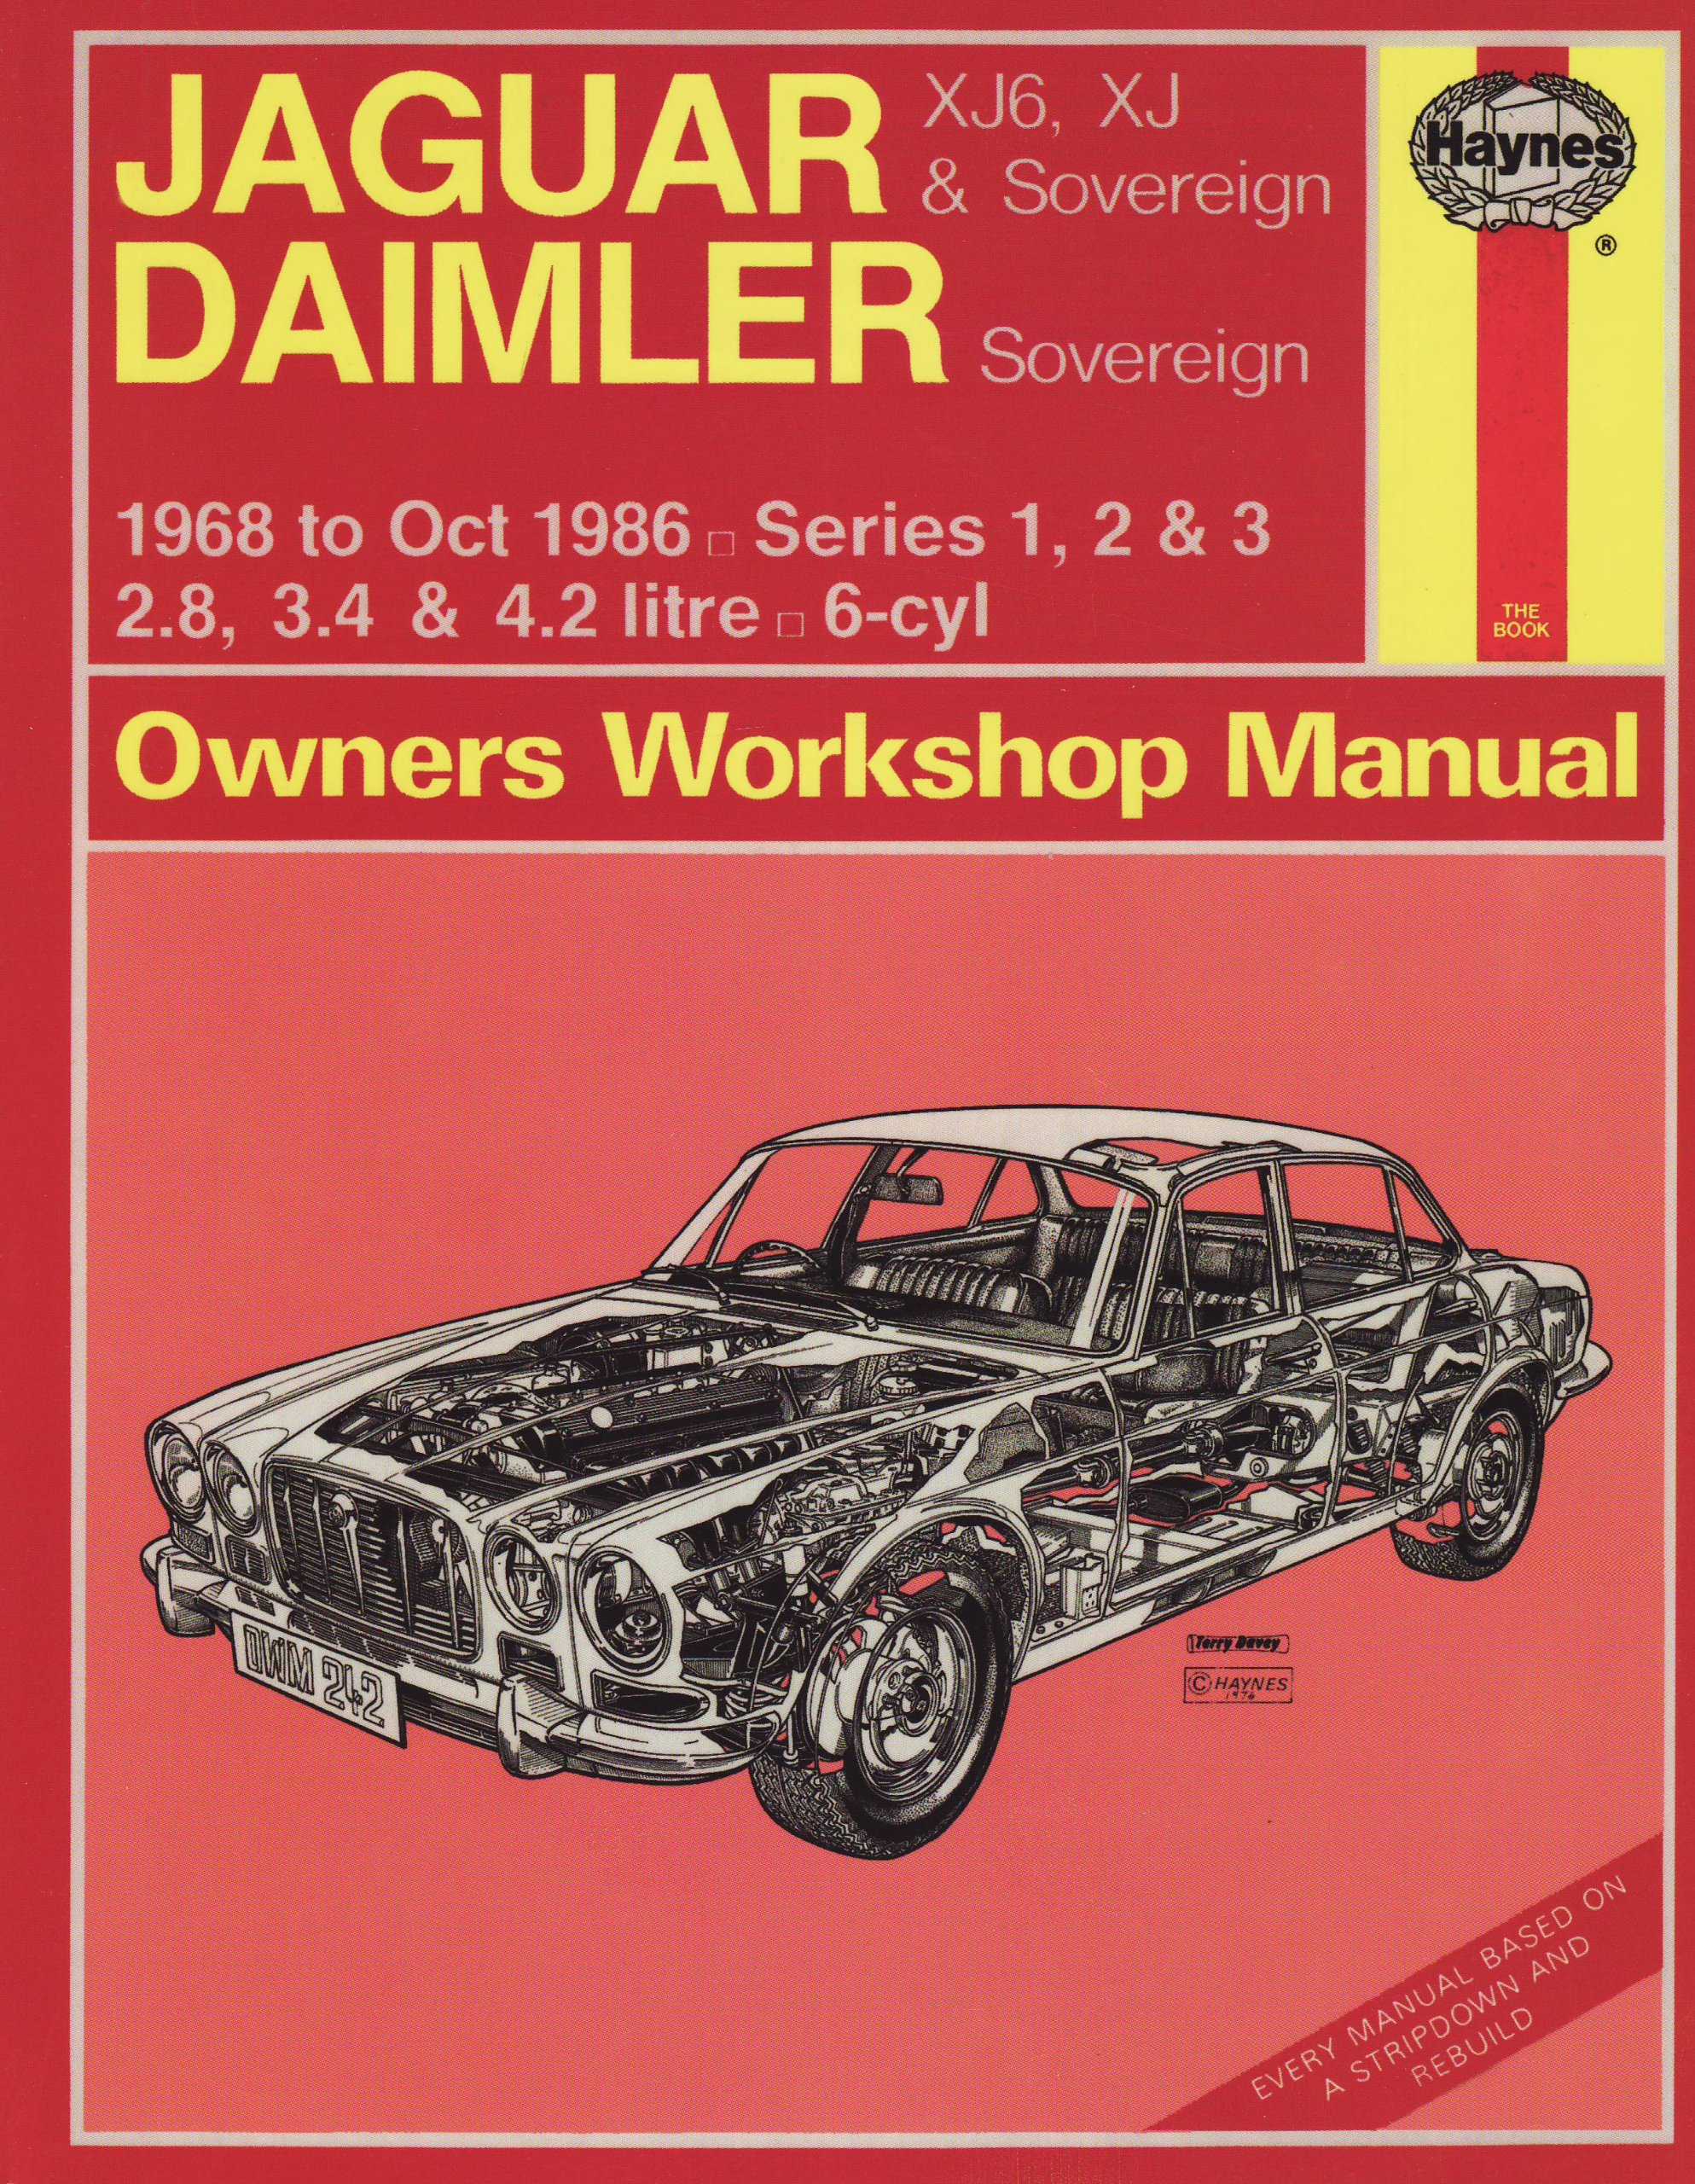 Jaguar XJ6 and XJ Sovereign/Daimler Sovereign 1968-86 Series 1, 2 and 3  Owner's Workshop Manual (Service & repair manuals): Amazon.co.uk: J. H.  Haynes, ...